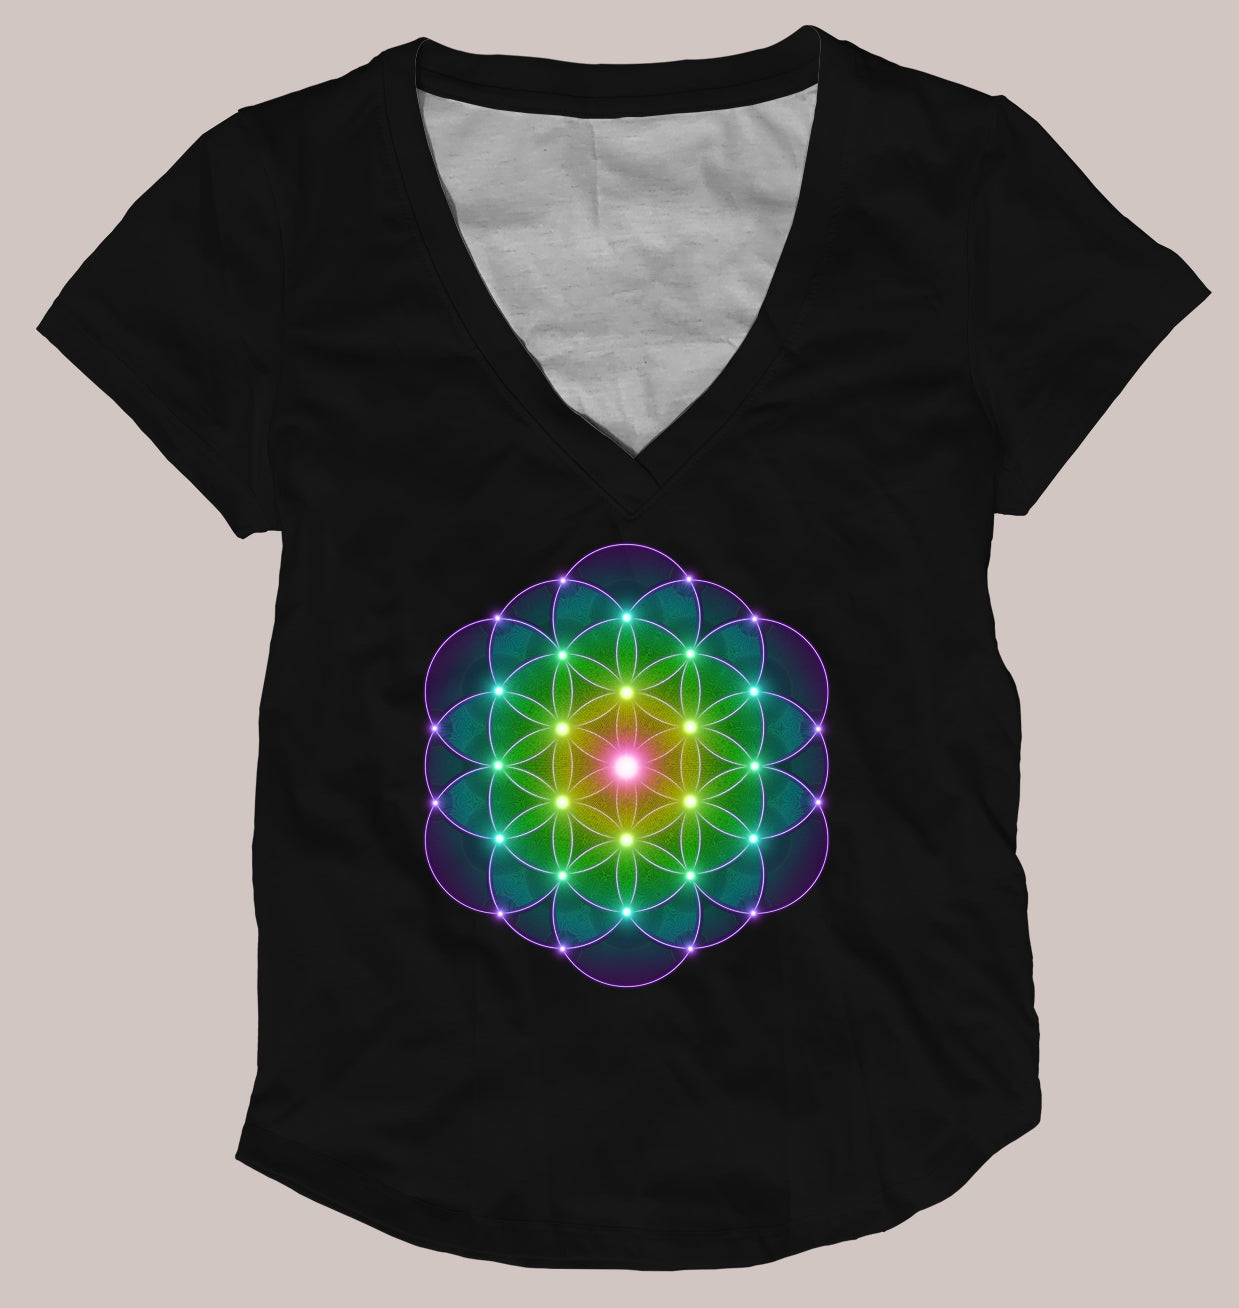 Flower of Life Women's Signature Shirt